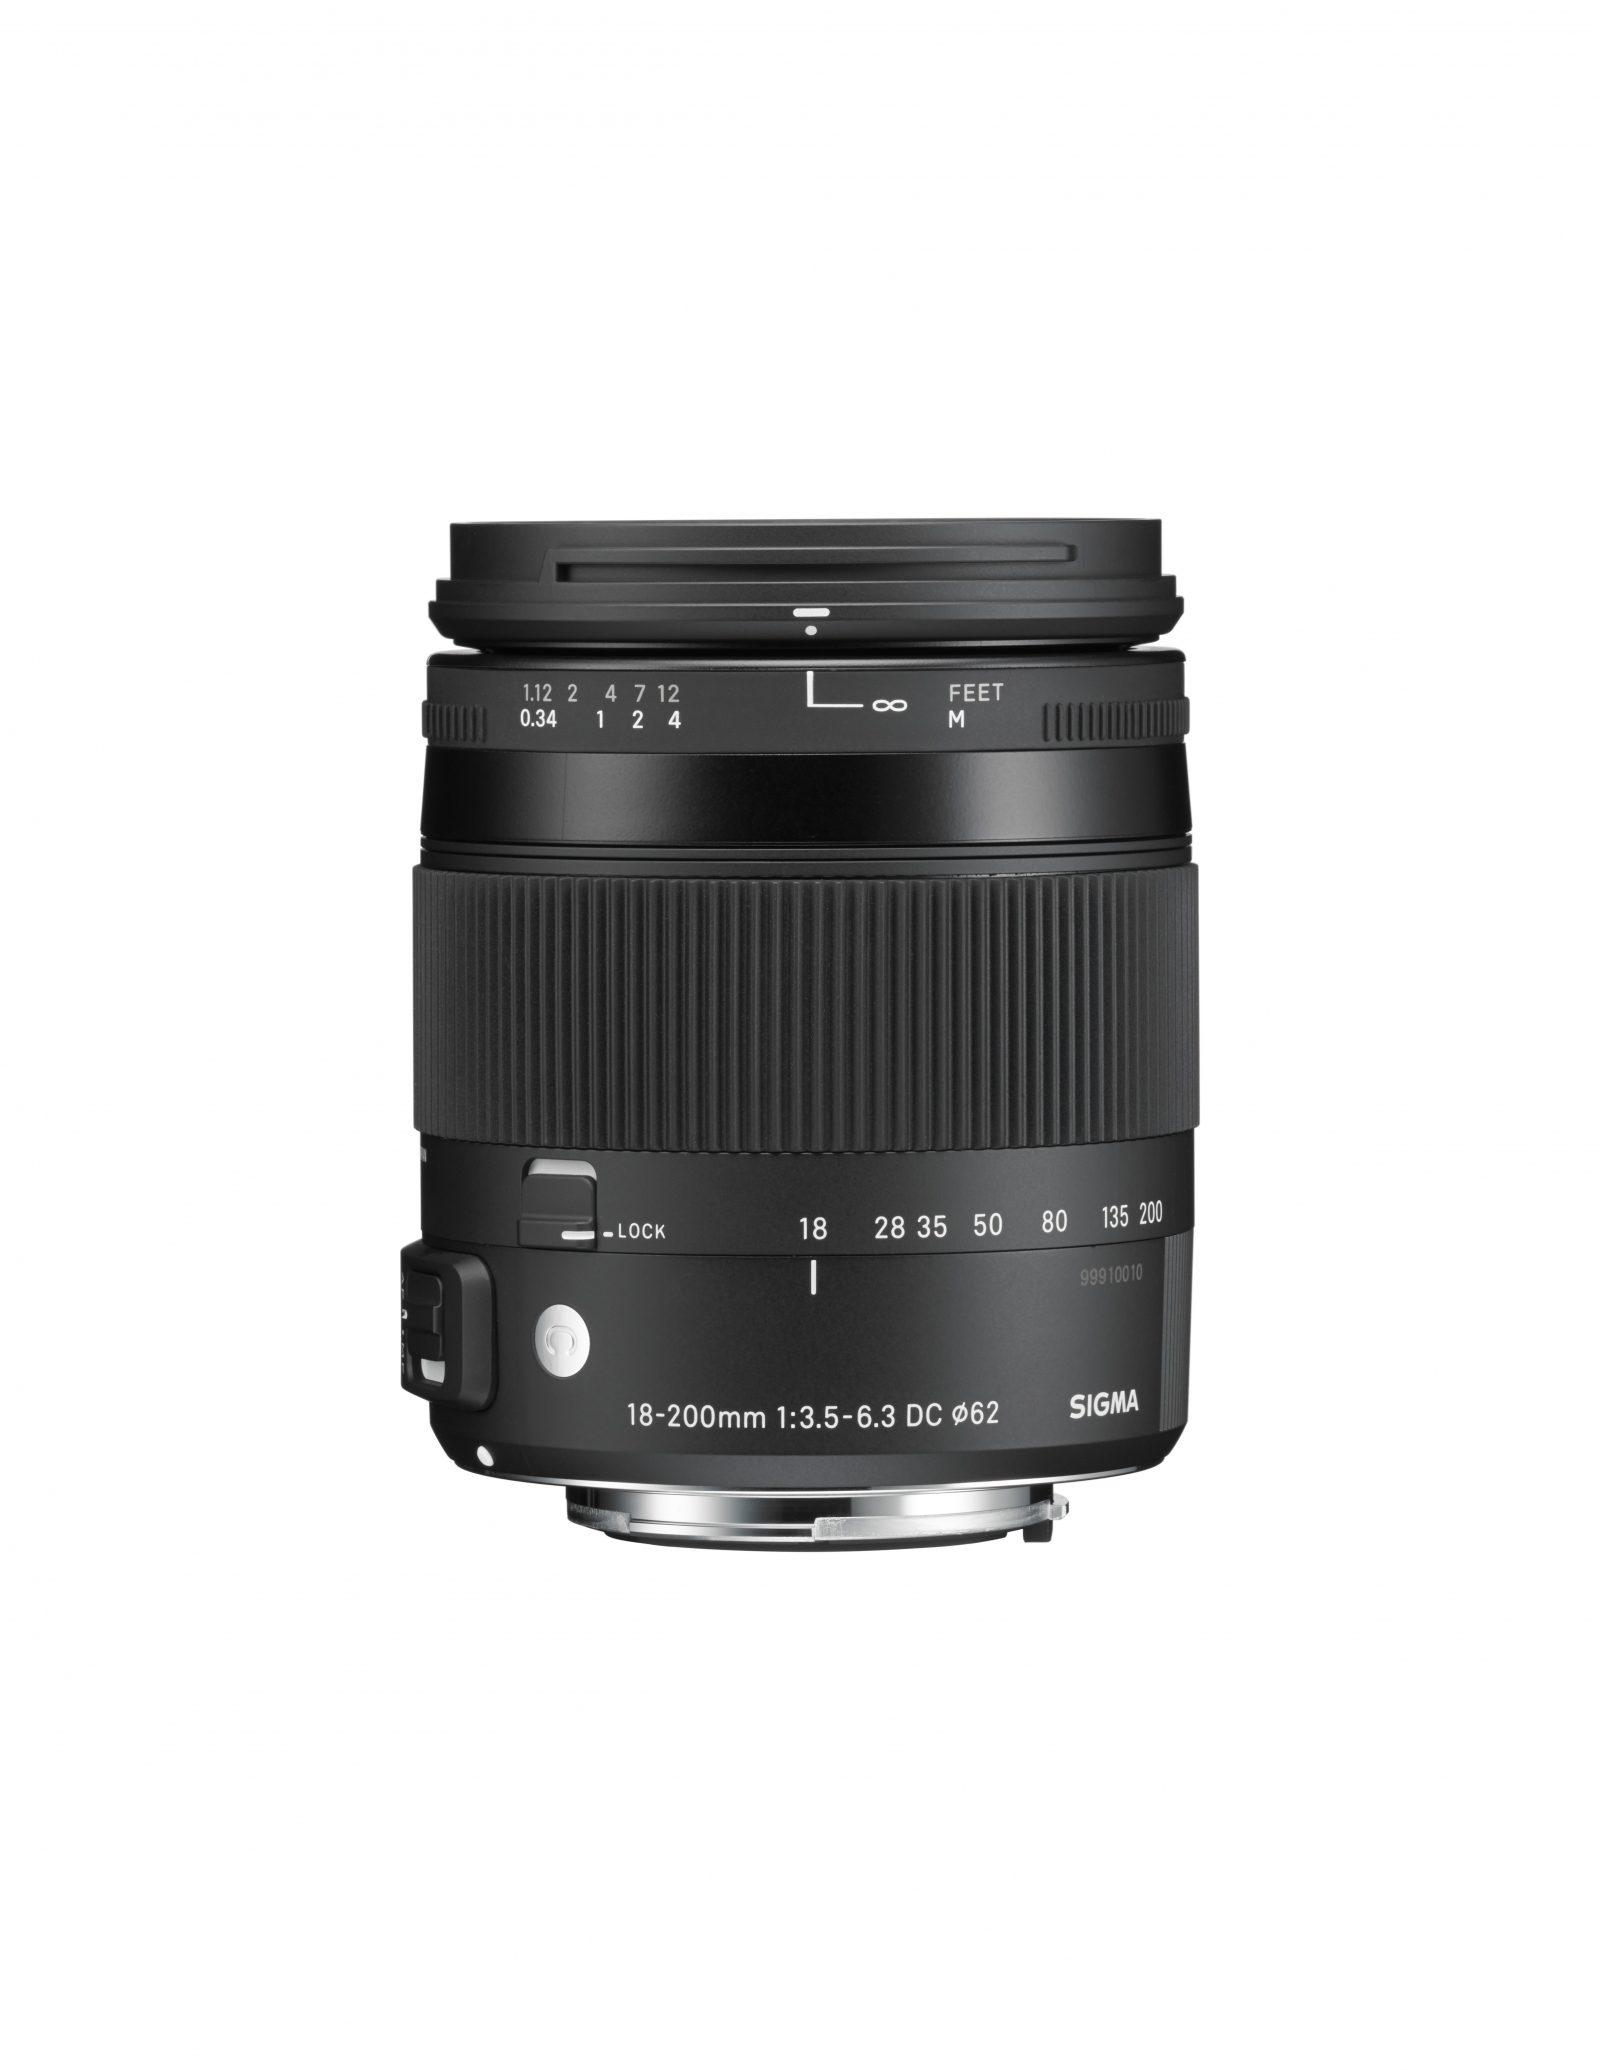 Outdoor Photography Blog Photographer Panasonic Lumix G Leica Dg Nocticron 425mm F 12 Asph Sigma Introduces Two New Lenses At Ces 2014